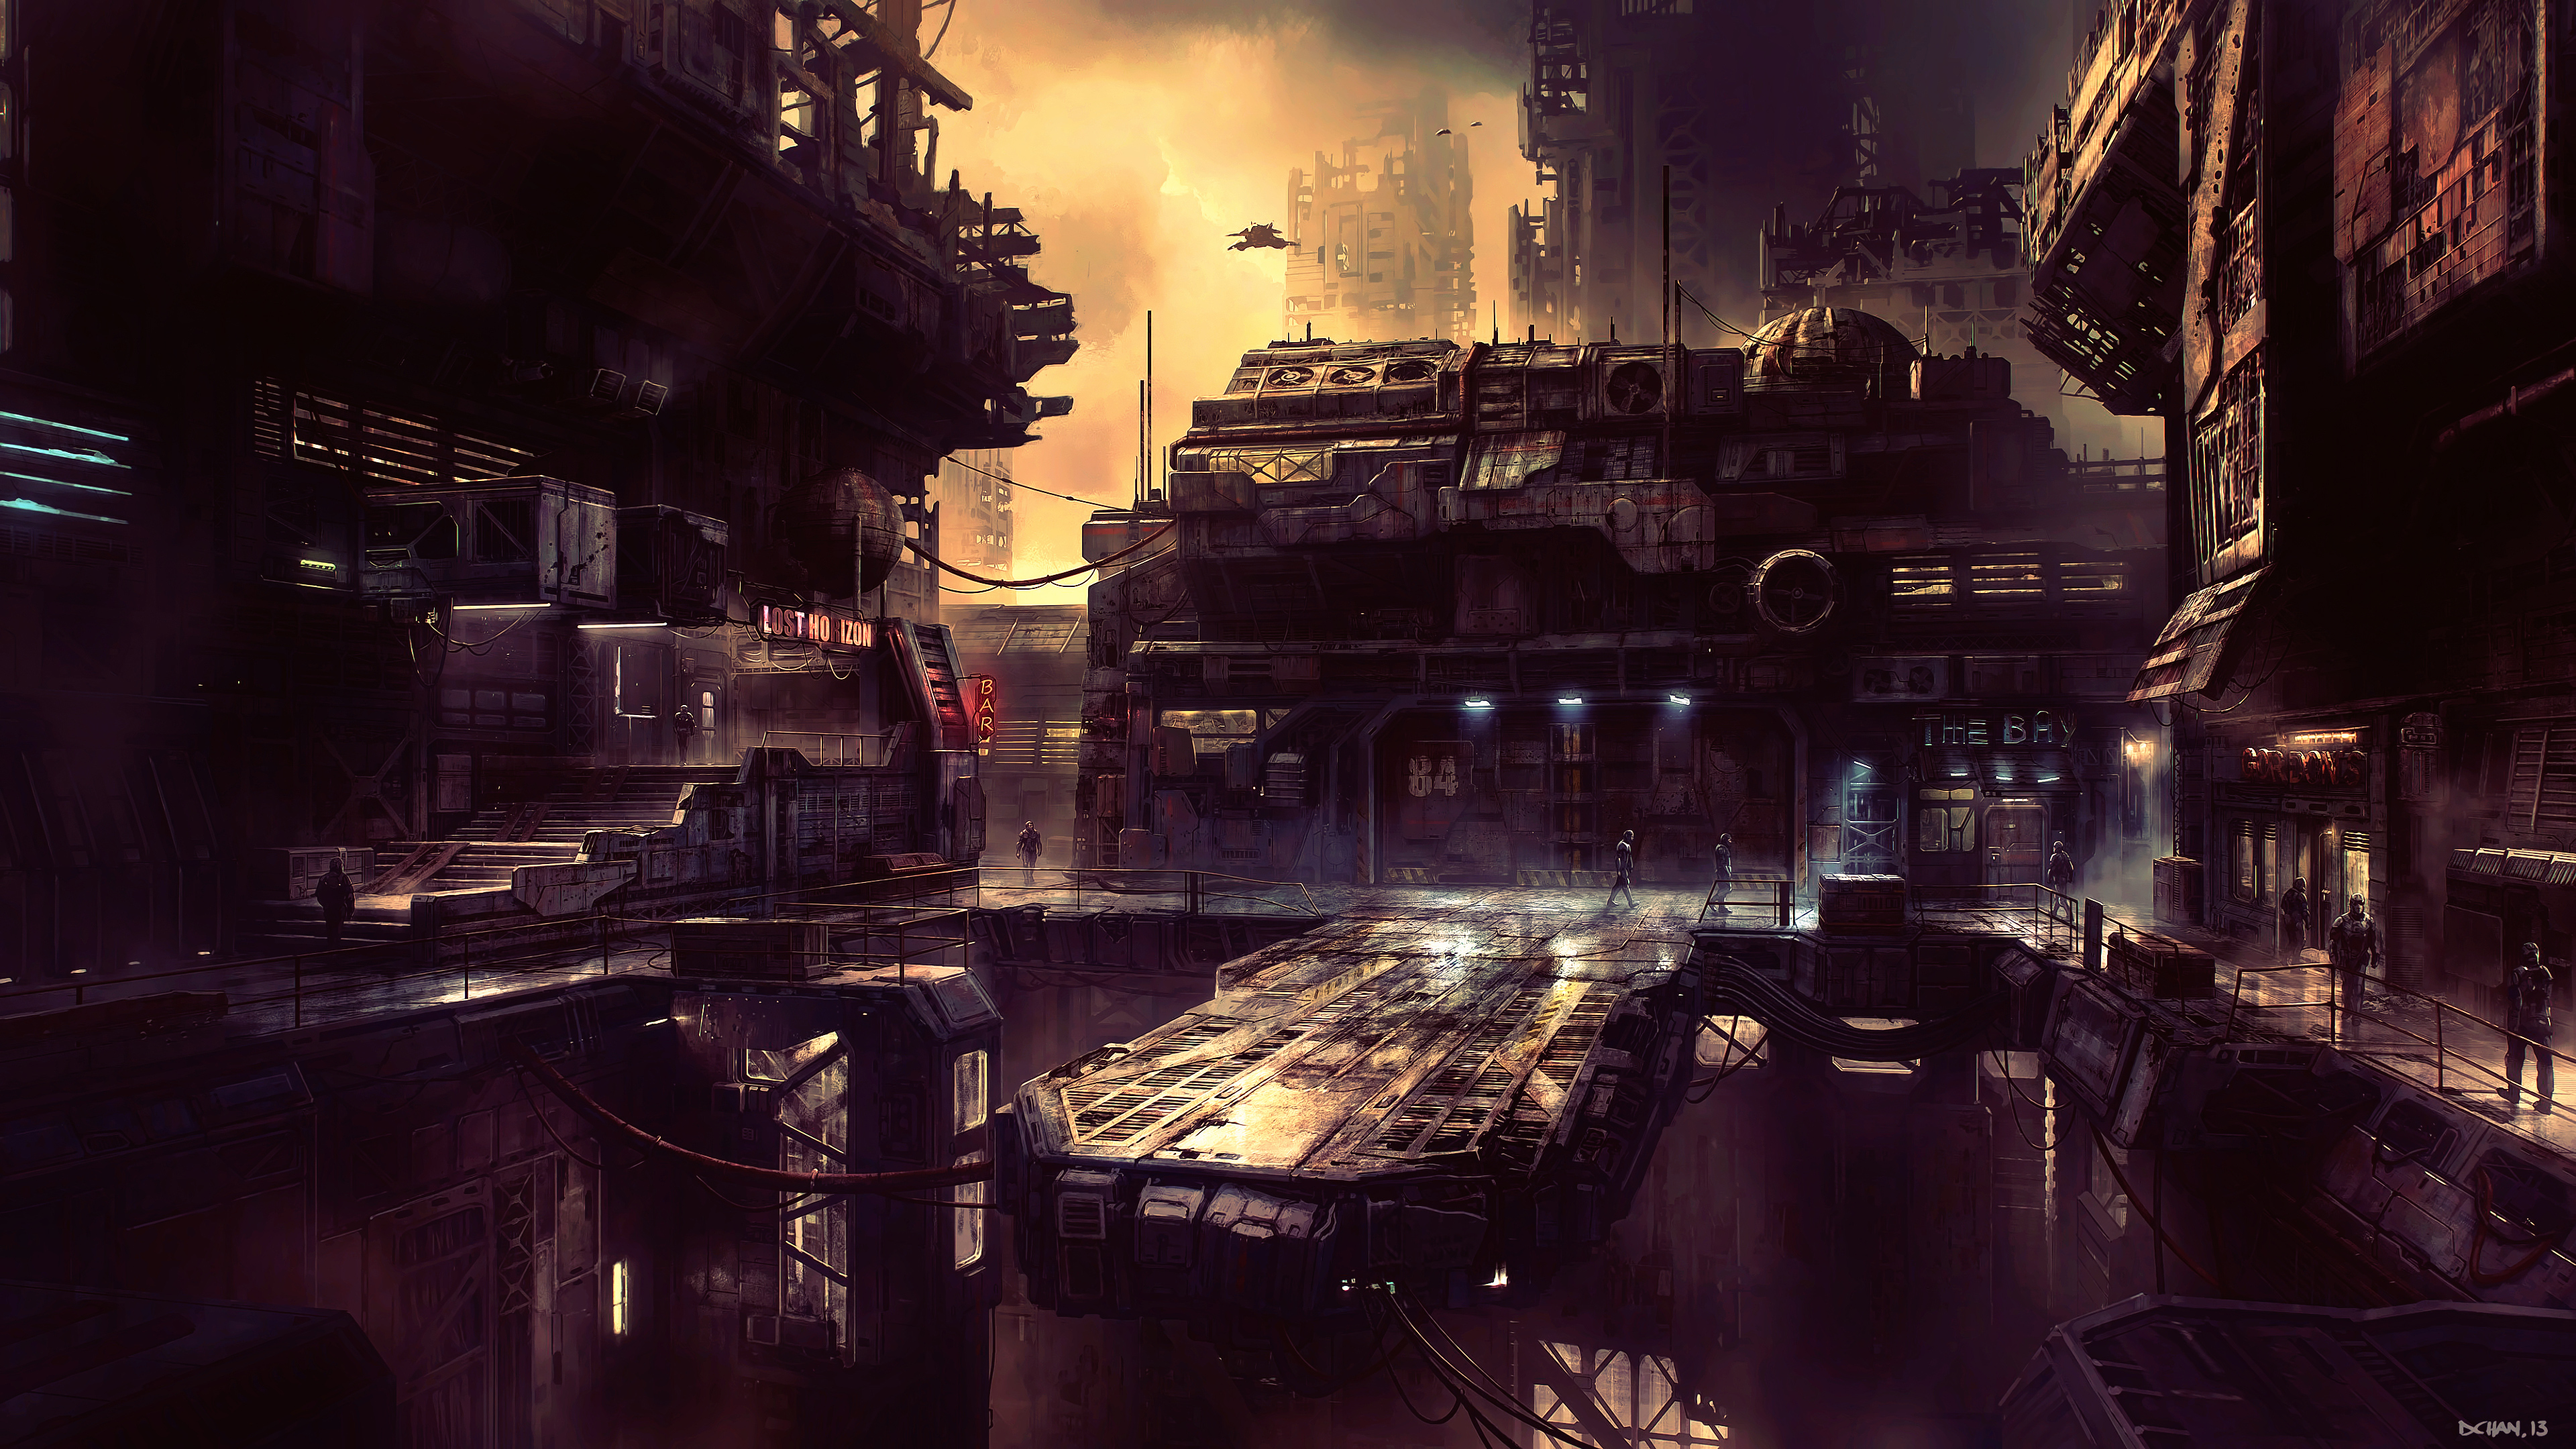 Science Fiction Future City 4k Hd Artist 4k Wallpapers